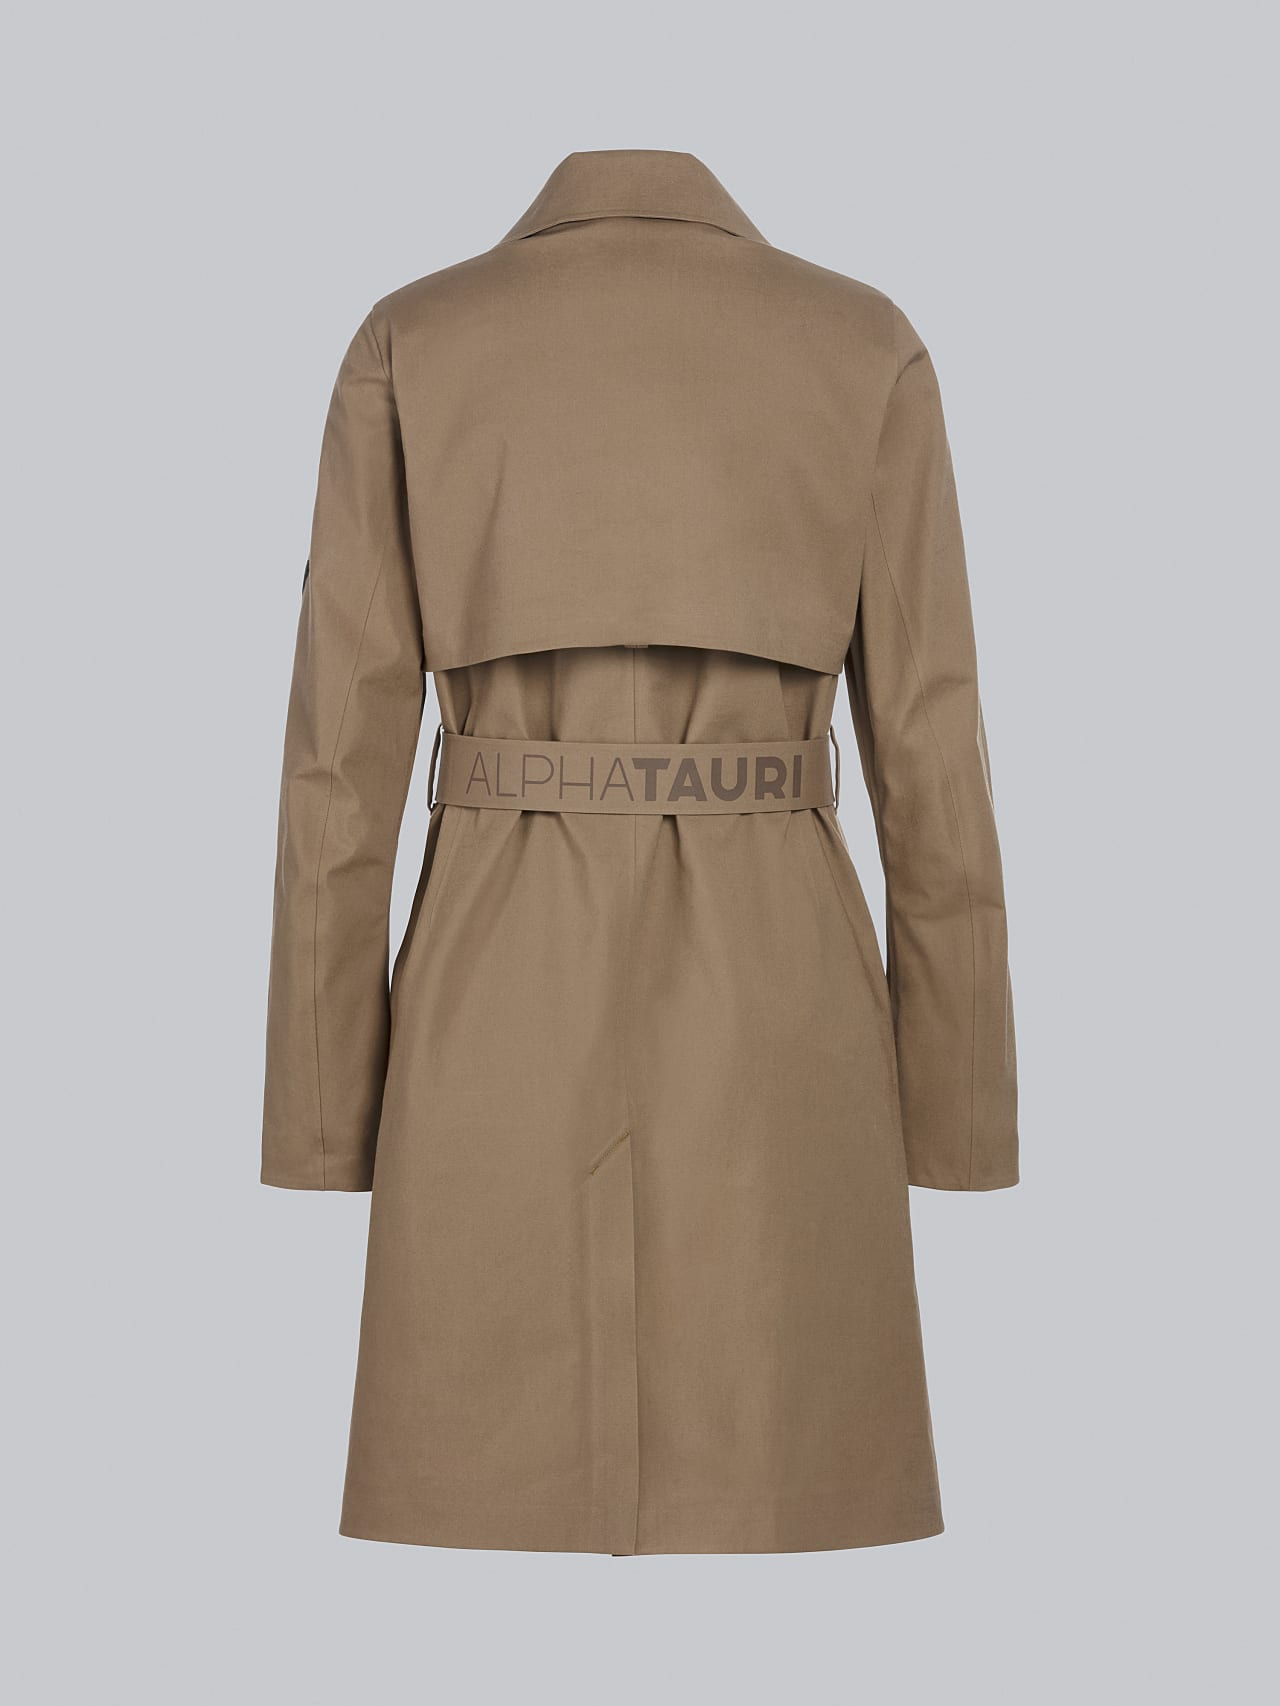 OMANI V1.Y5.02 Packable and Waterproof Trench Coat gold Left Alpha Tauri